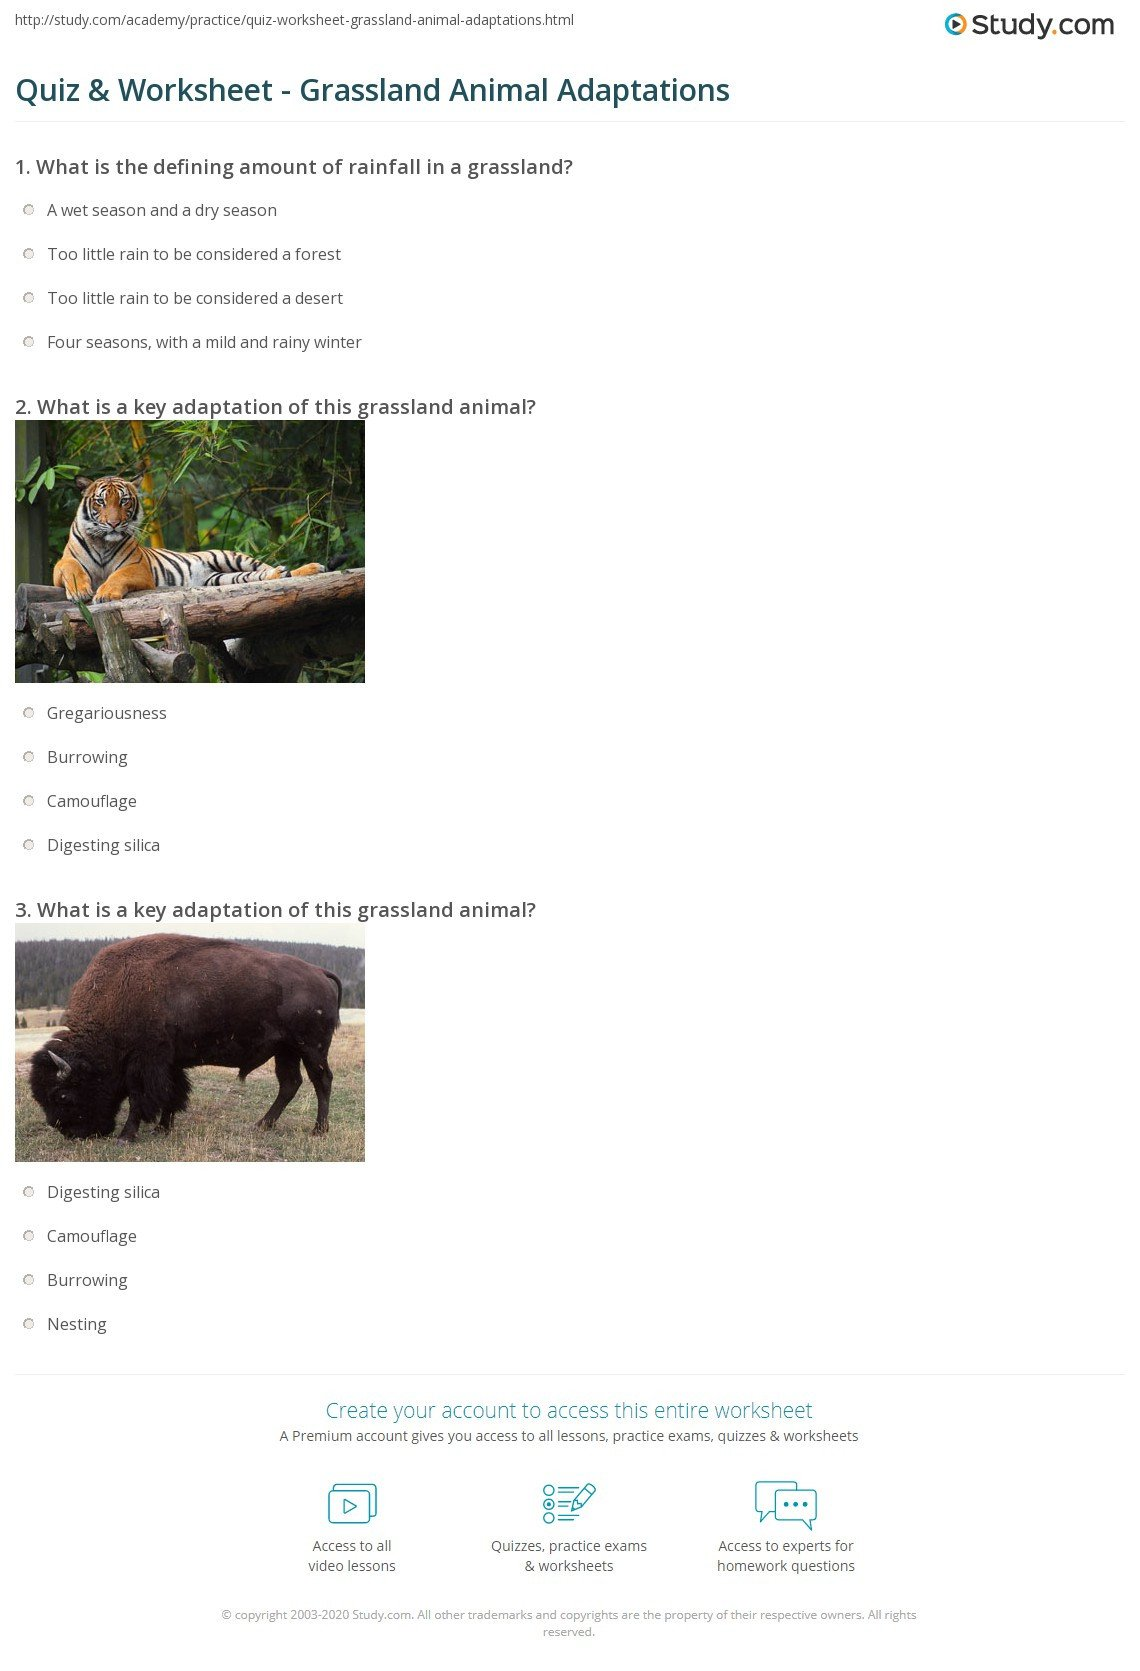 quiz worksheet grassland animal adaptations